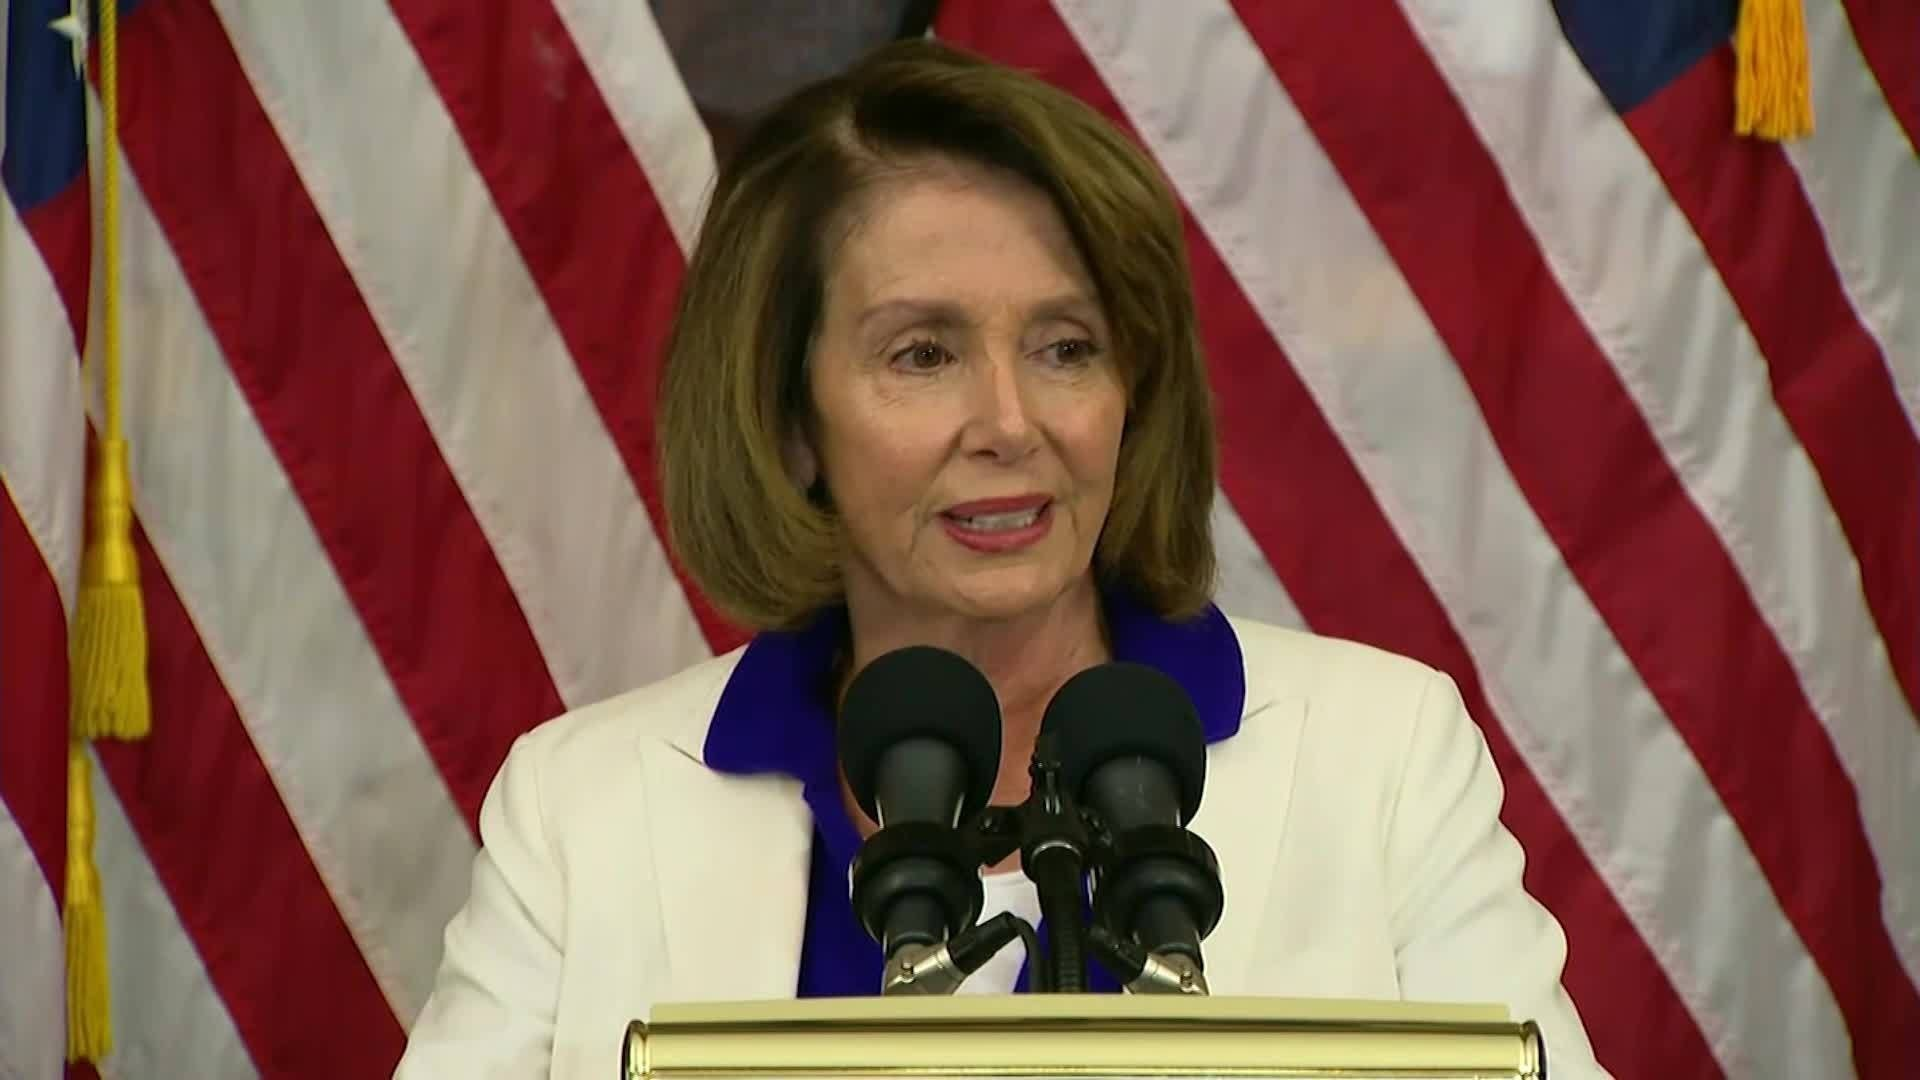 Pelosi Won't Say If Conyers, Accused Of Sexual Harassment, Should Step Down